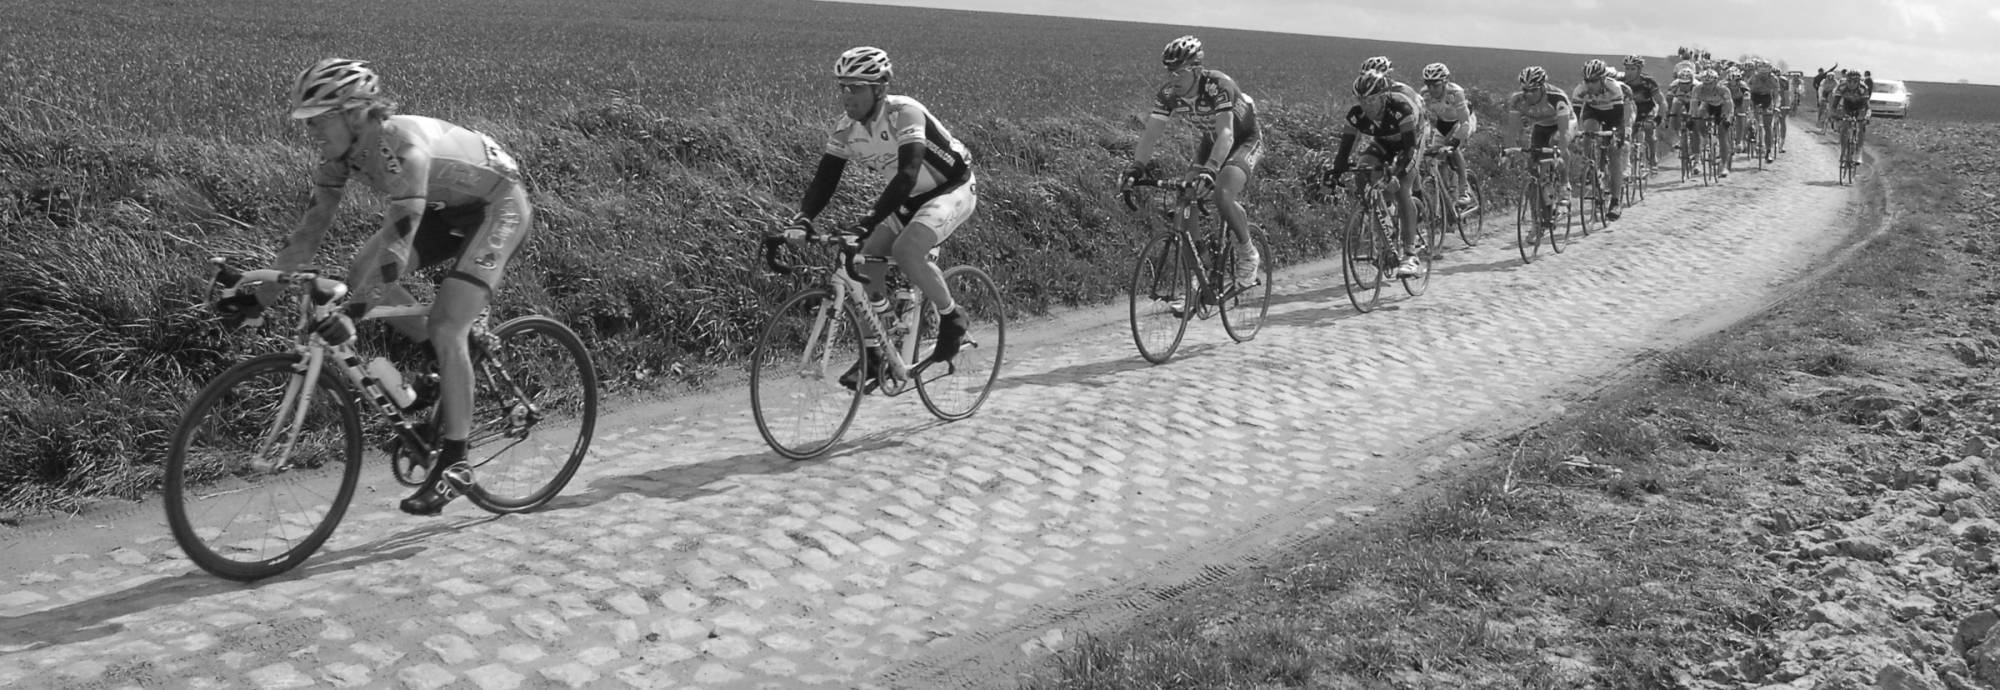 Header: The history of Paris-Roubaix